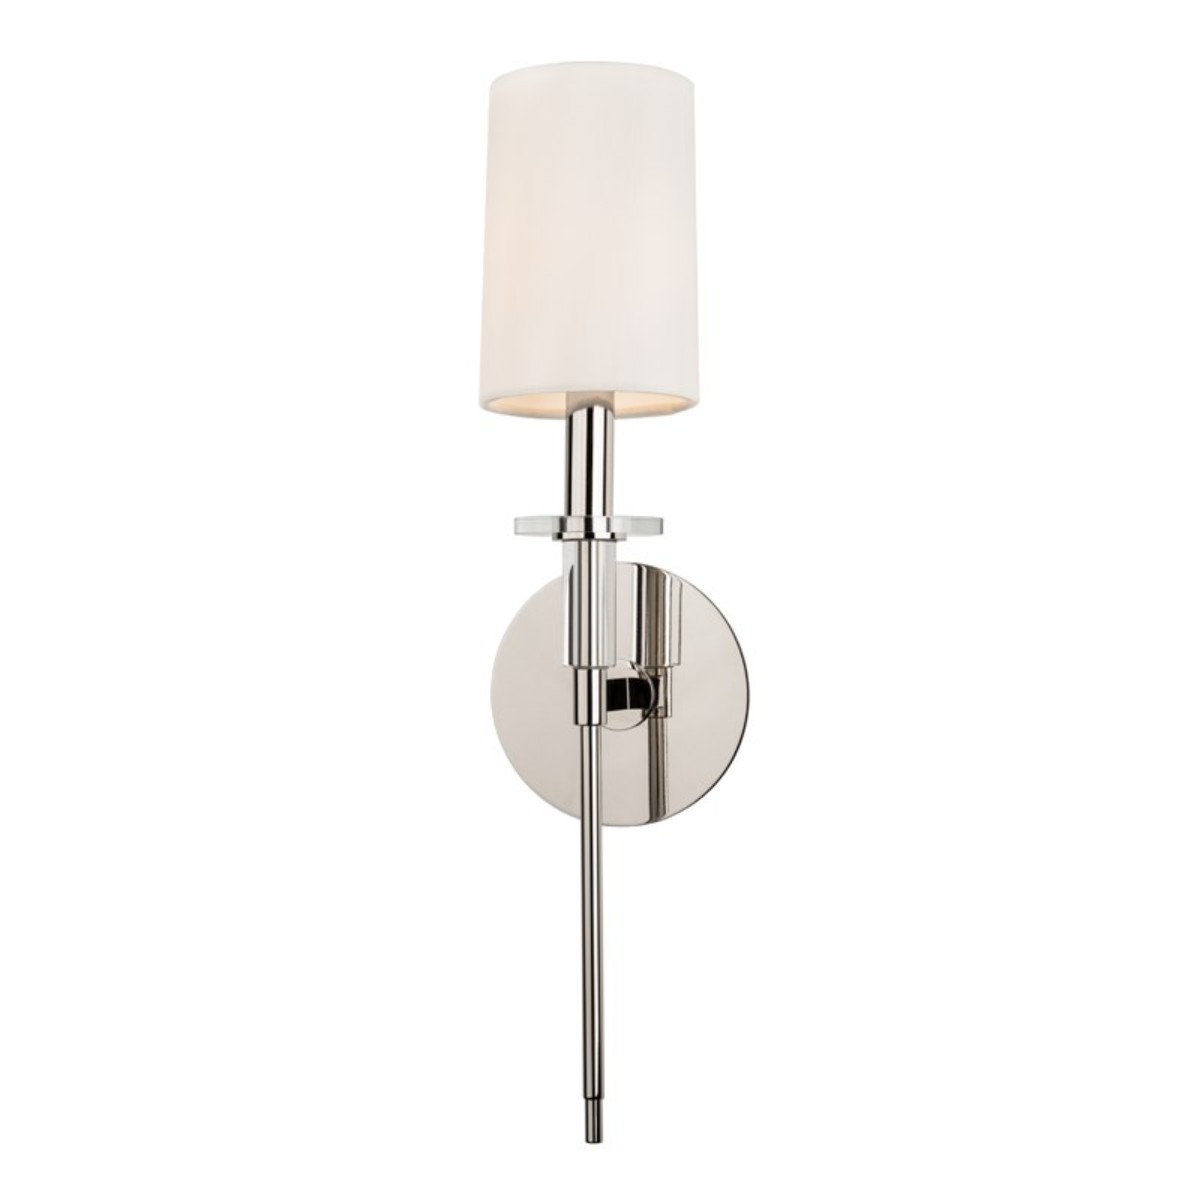 Hudson Valley | Amherst Wall Light | Polished Nickel